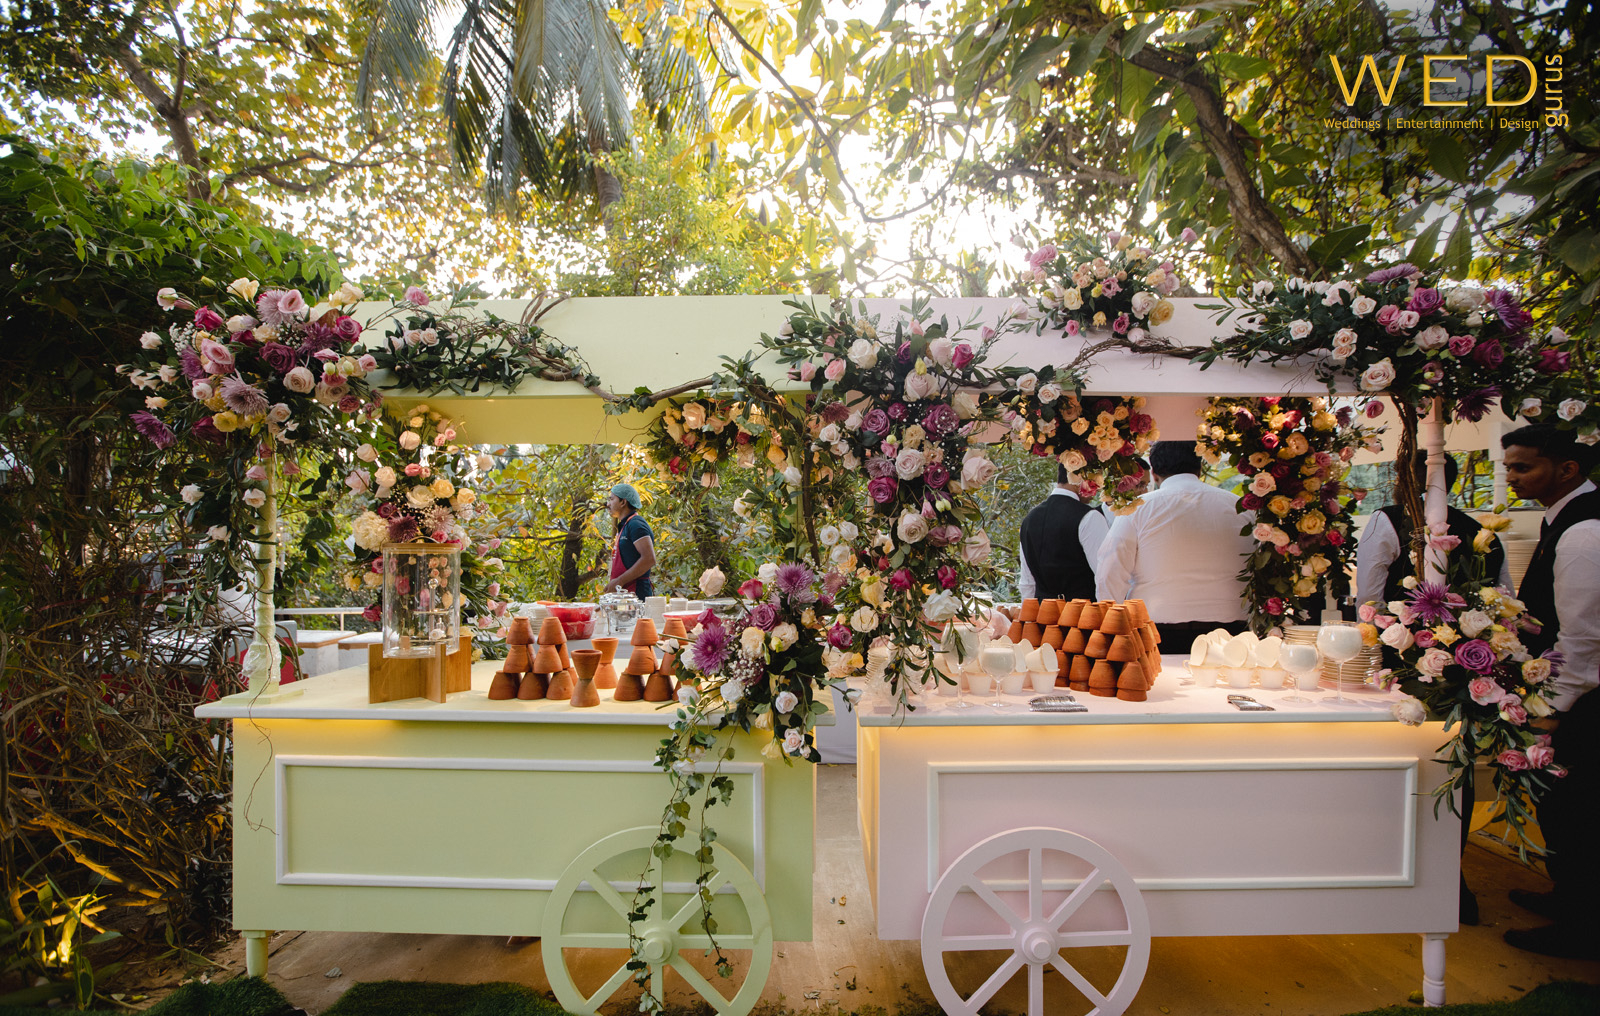 pastel colored food stalls decorated with flowers